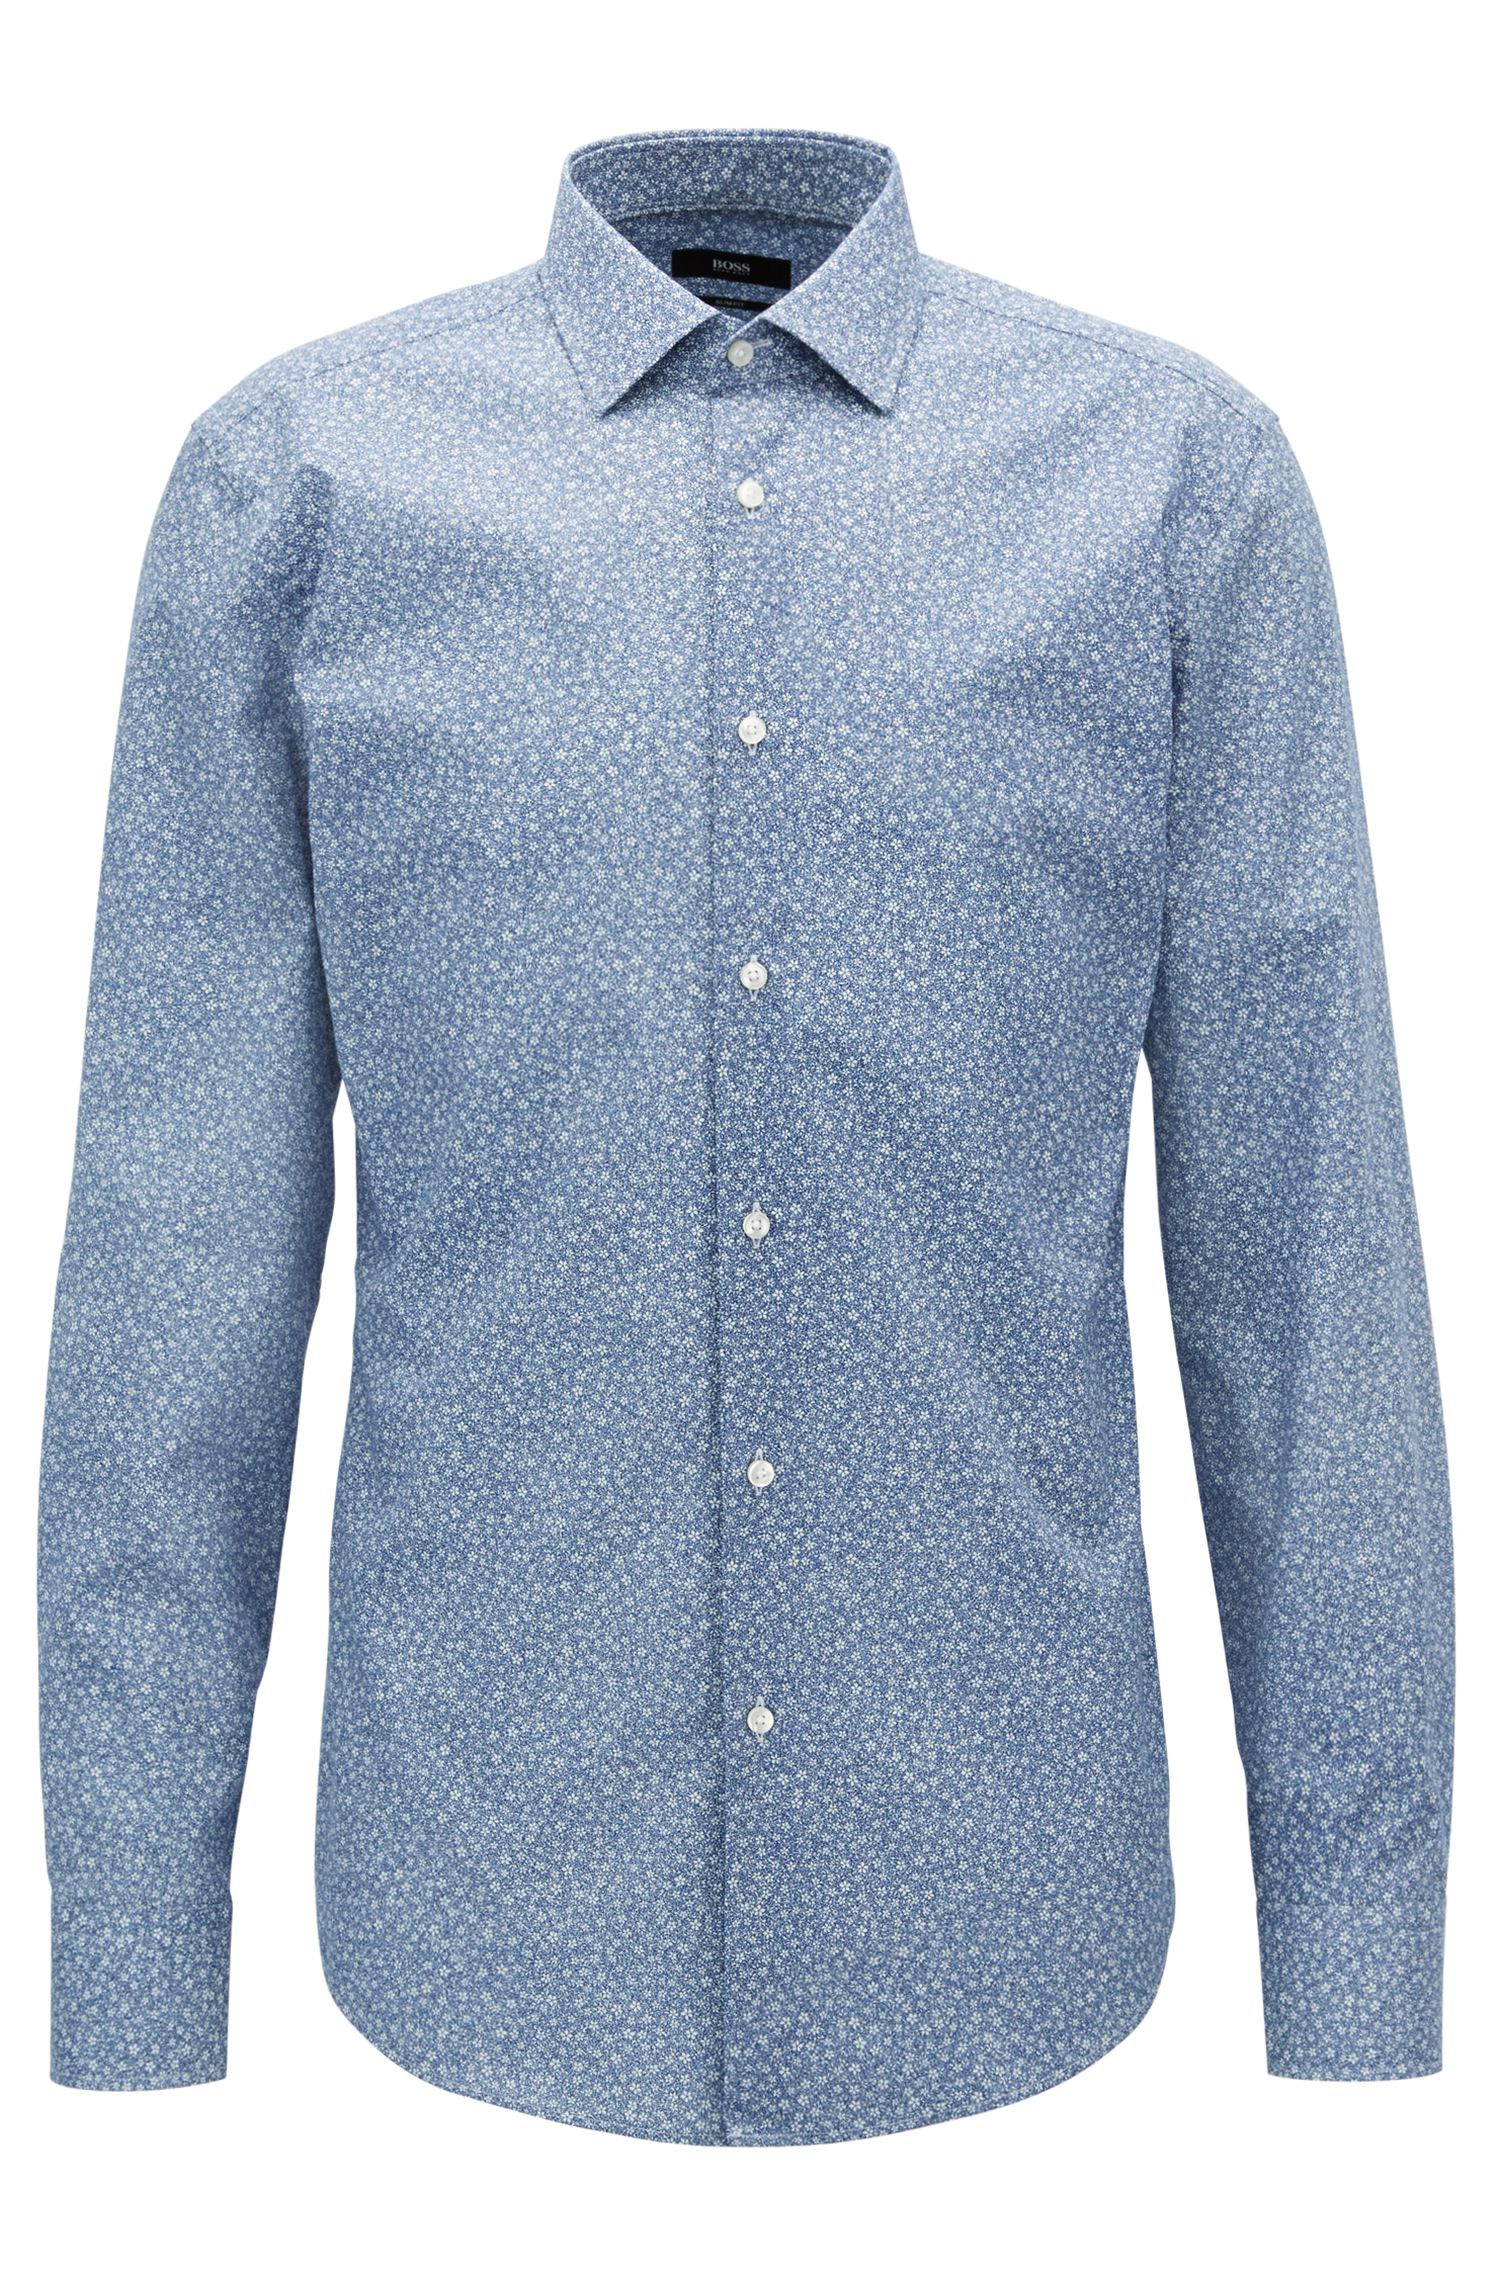 Floral-print cotton shirt in a slim fit